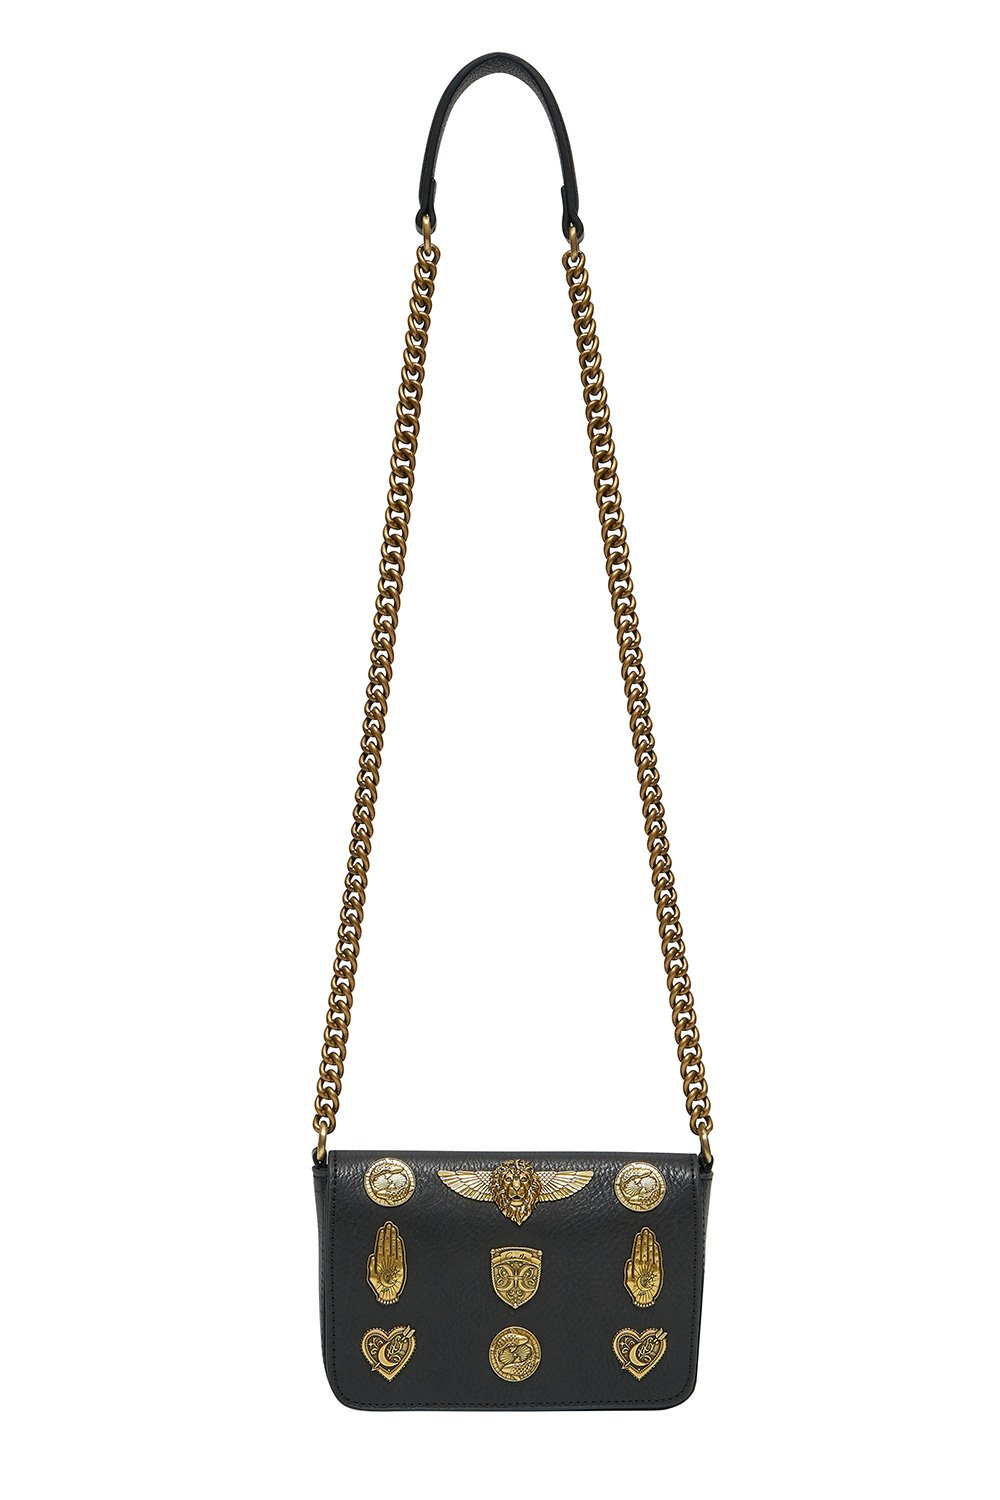 STUDDED LEATHER CROSS BODY SOLID BLACK